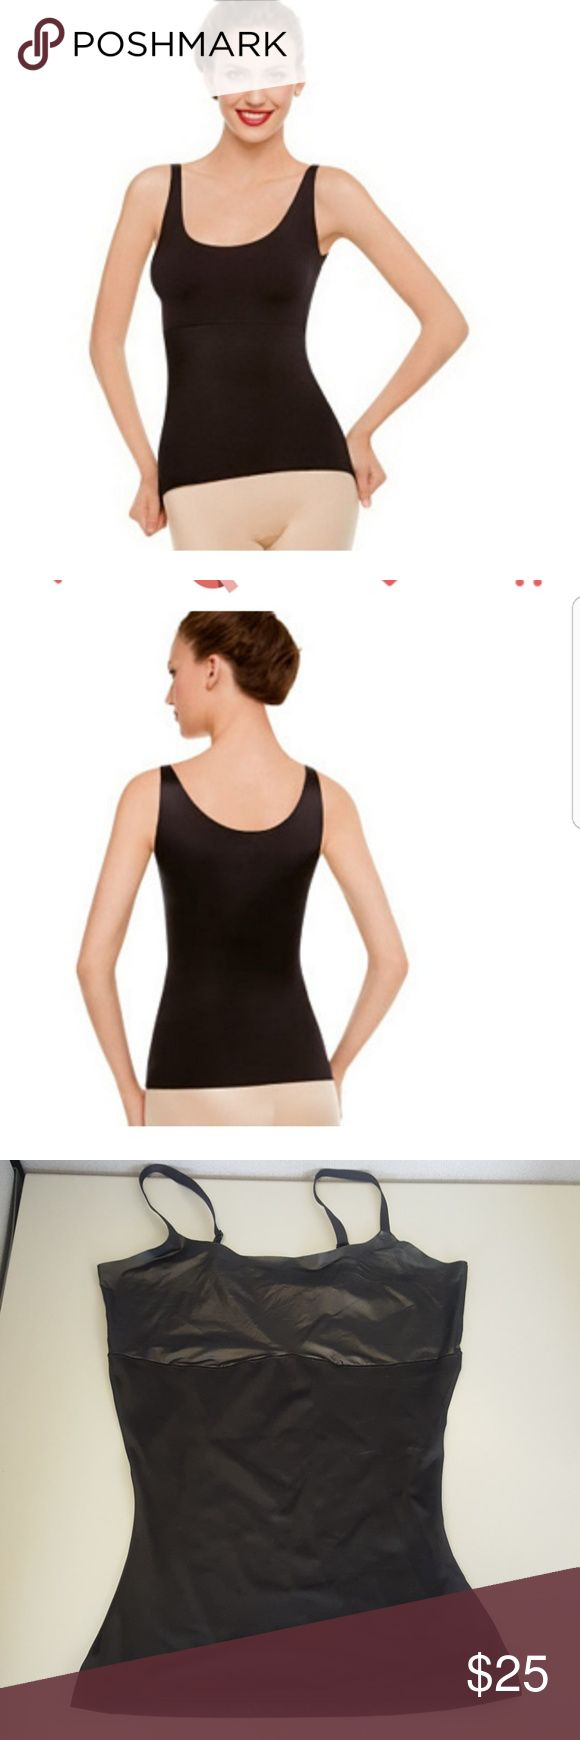 """Spanx """"Hide & Sleek"""" Shaping Camisole Smooth bumps and bulges in an instant with the help of this Hide & Sleek shaping camisole. Designed to streamline your top half, it's ideal under tops, tanks, shirts, or dresses. From Spanx(R) Hosiery.  L (10-12) Body 79% polyester/21% spandex, exclusive of trim; chest 90% polyester/10% spandex. Machine wash, line dry. Made in Costa Rica Part of the Love Your Assets Collection. SPANX Intimates & Sleepwear Shapewear"""